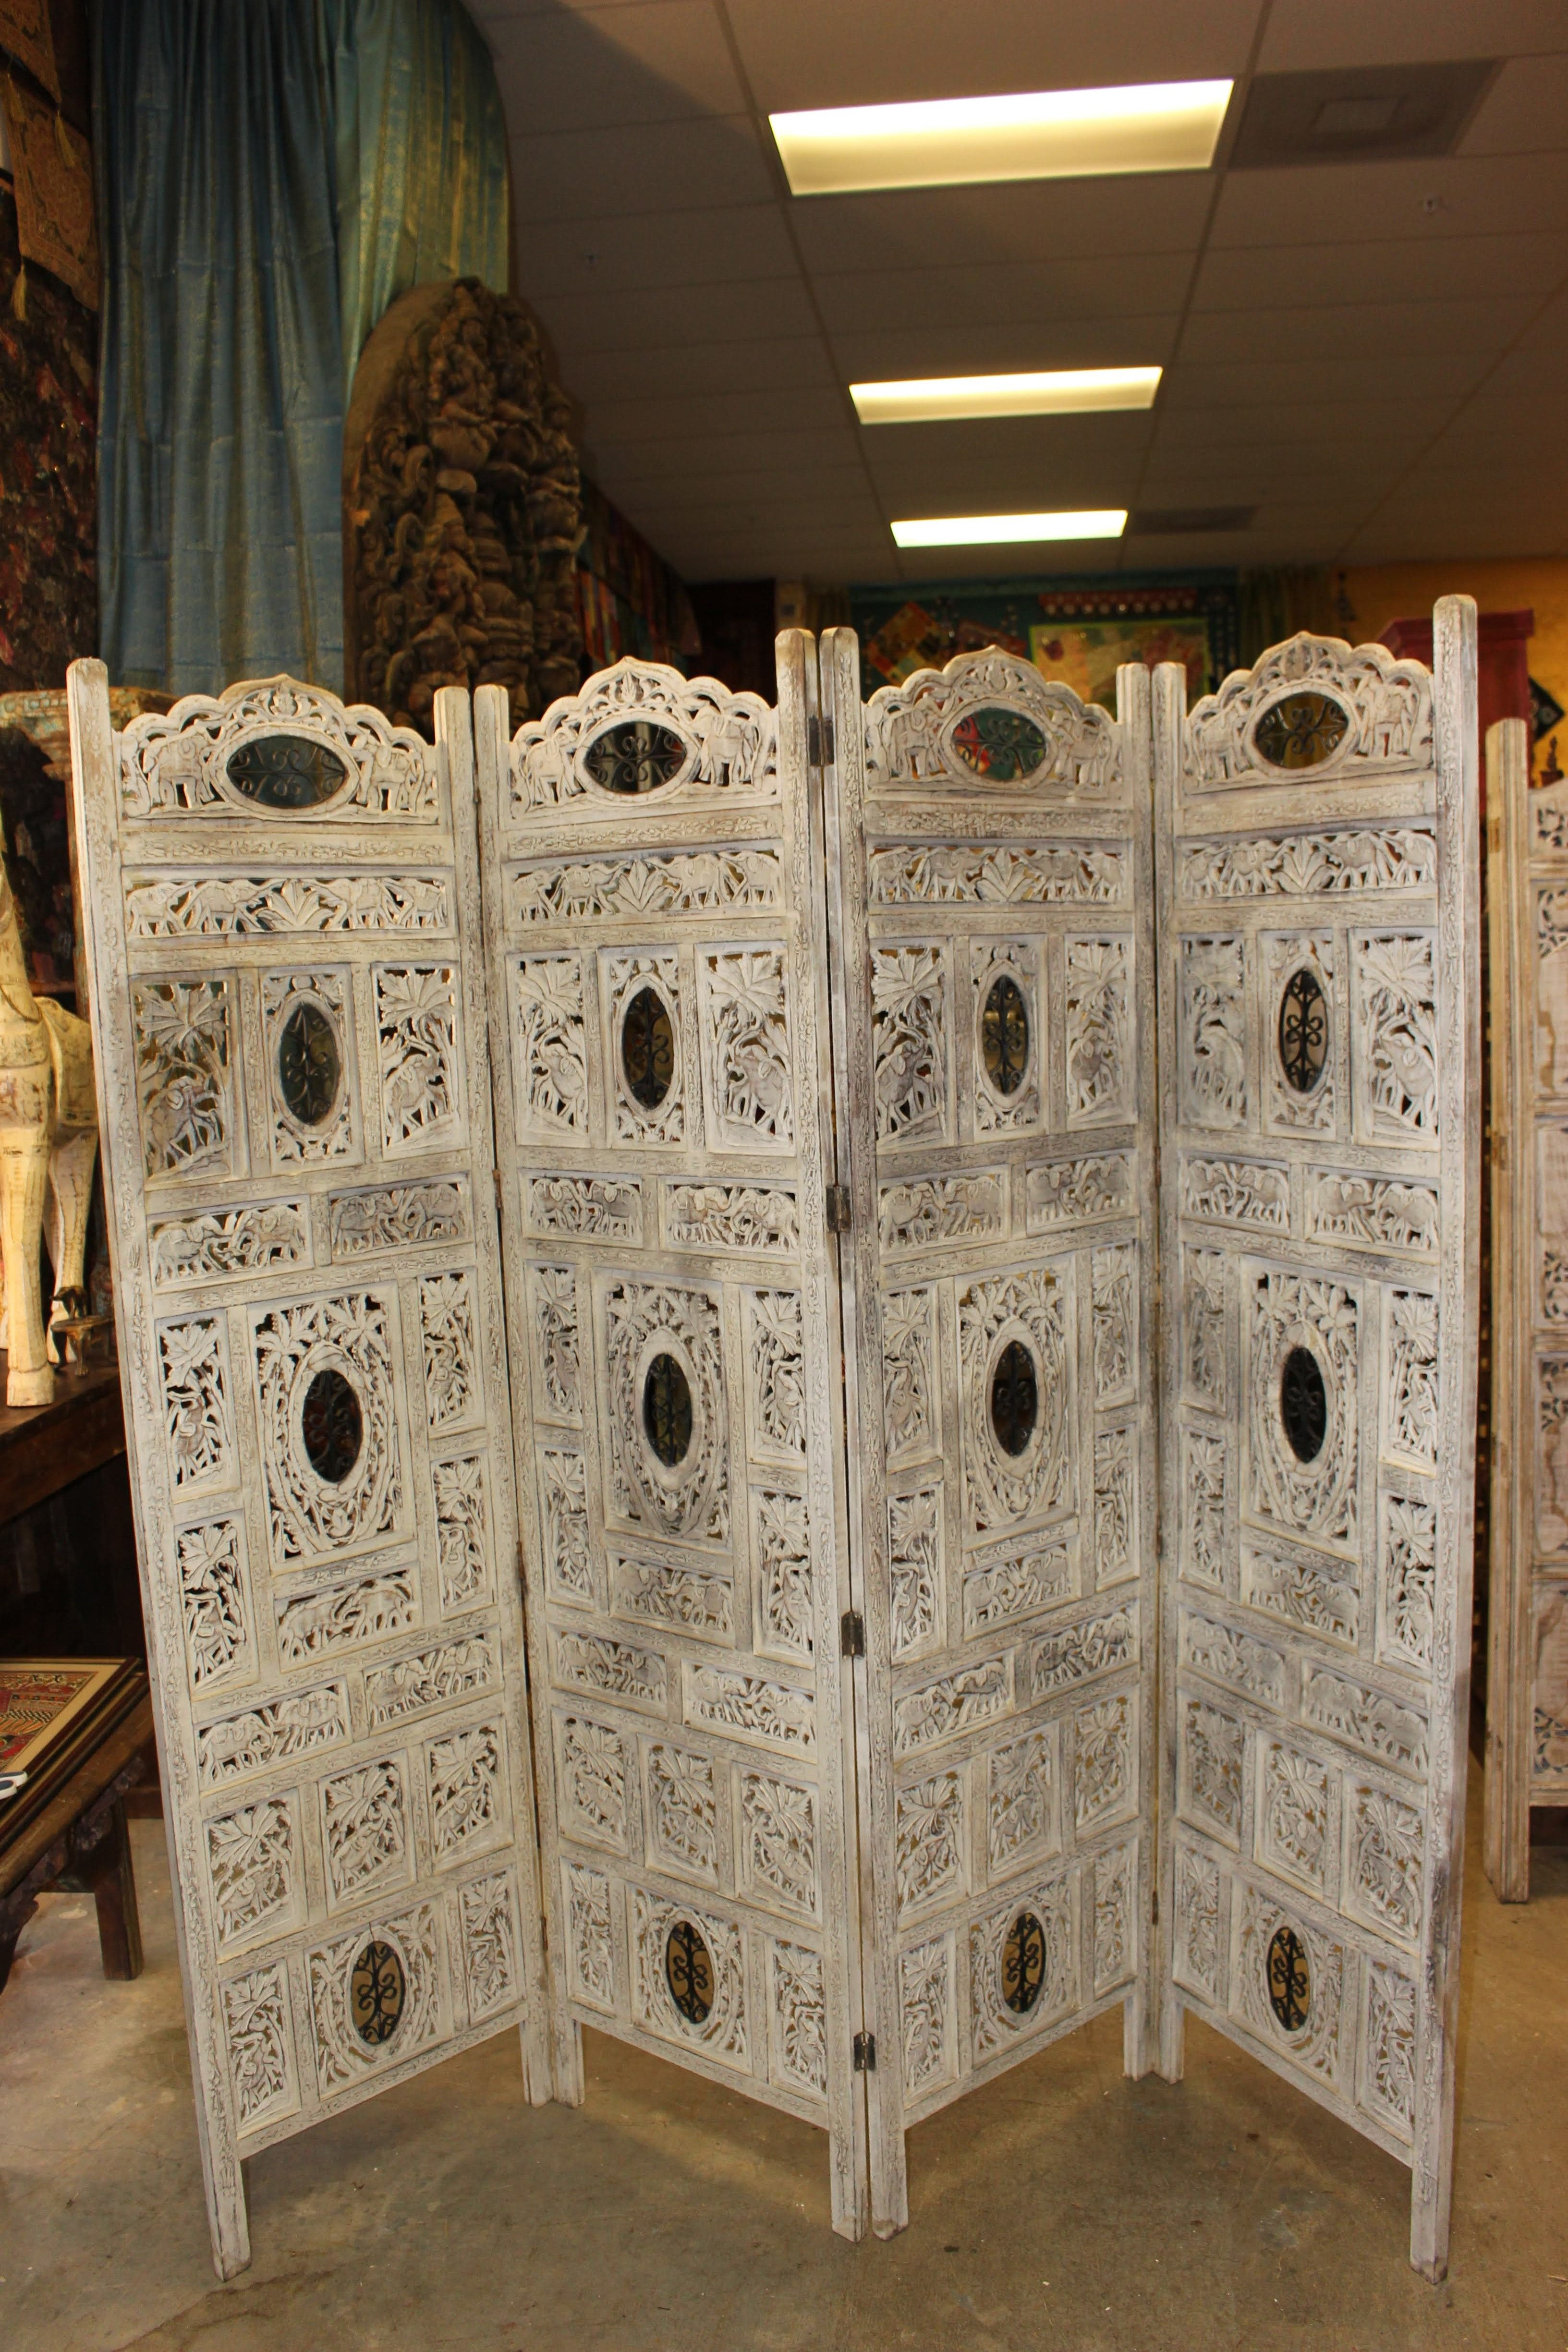 5d71e558793e7 The screen has Four panels Solid wood painted in a White antique rustic  finish.Handmade handcarved room divider screen.